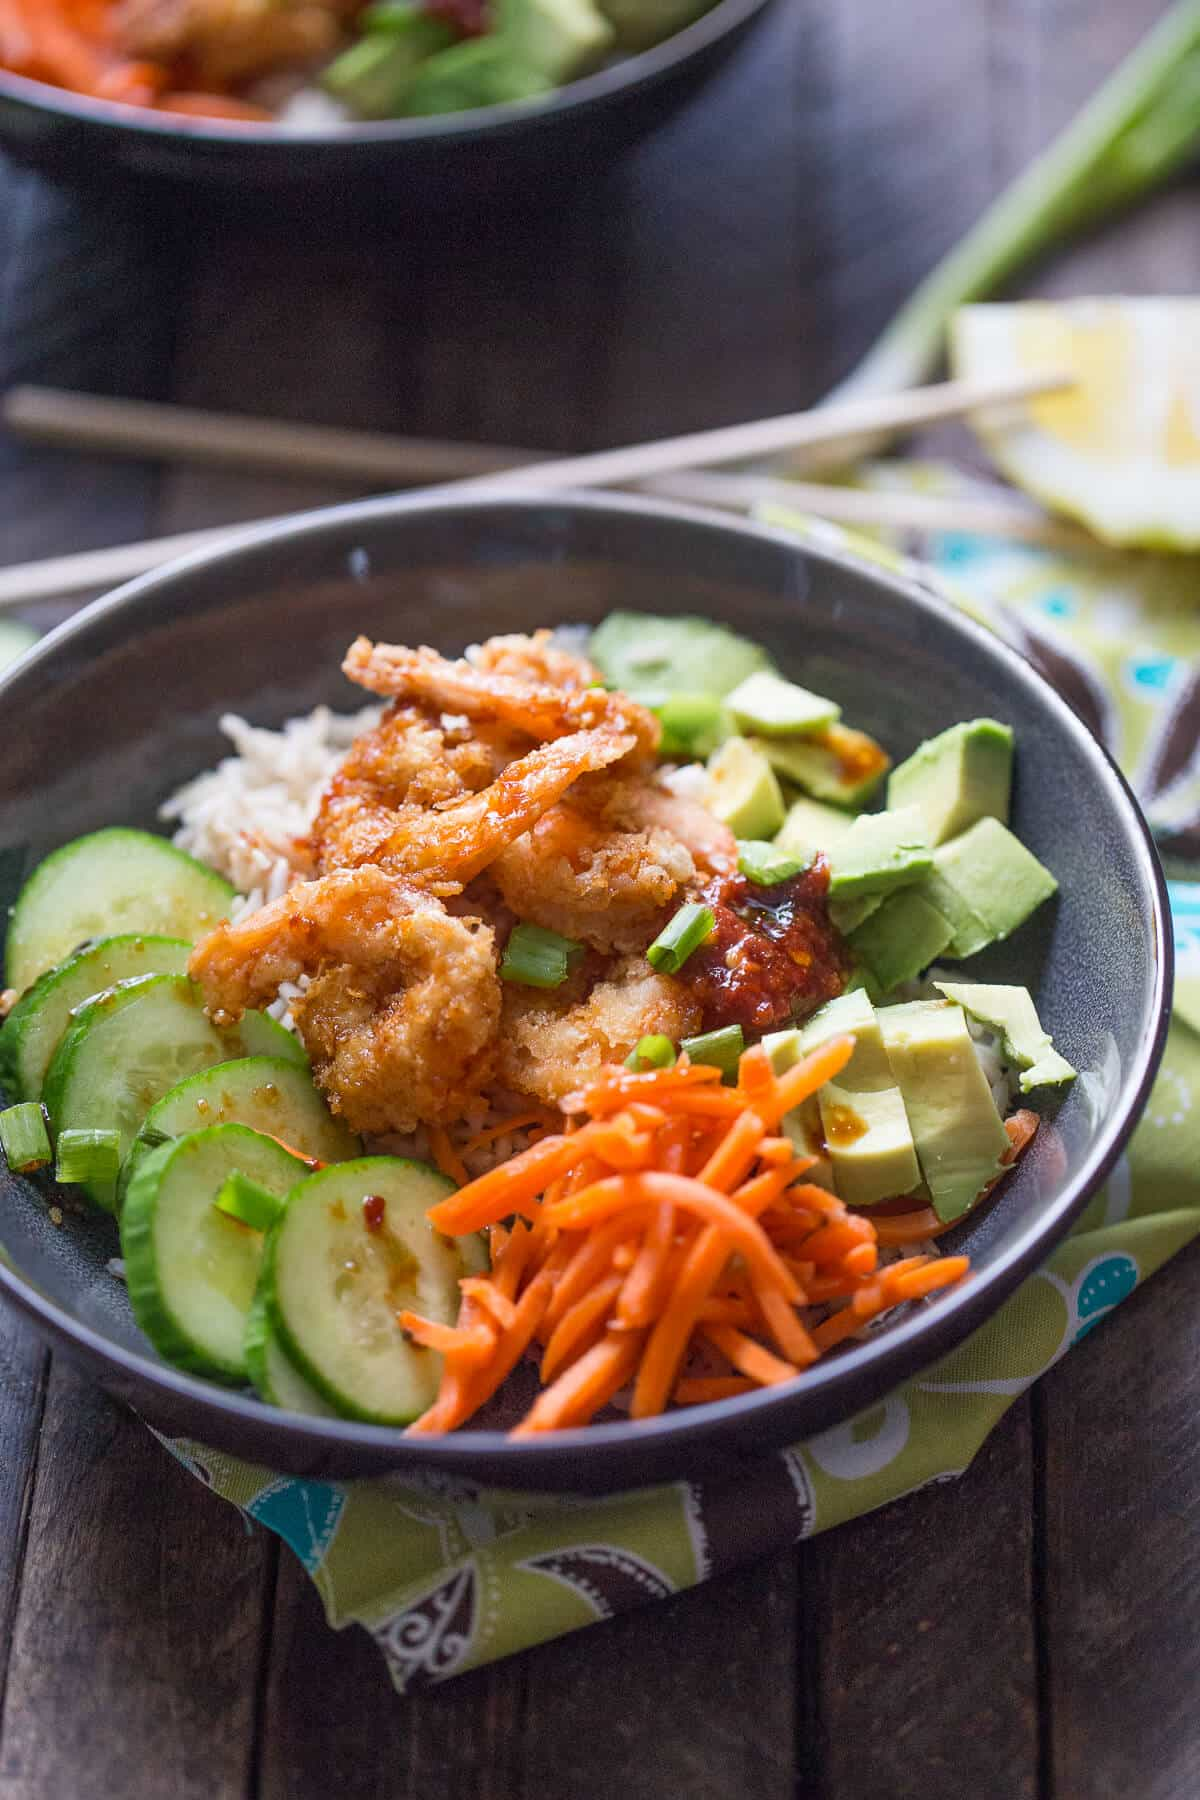 This breaded sushi bowl is perfect for when you crave sushi but don't want to dine out!